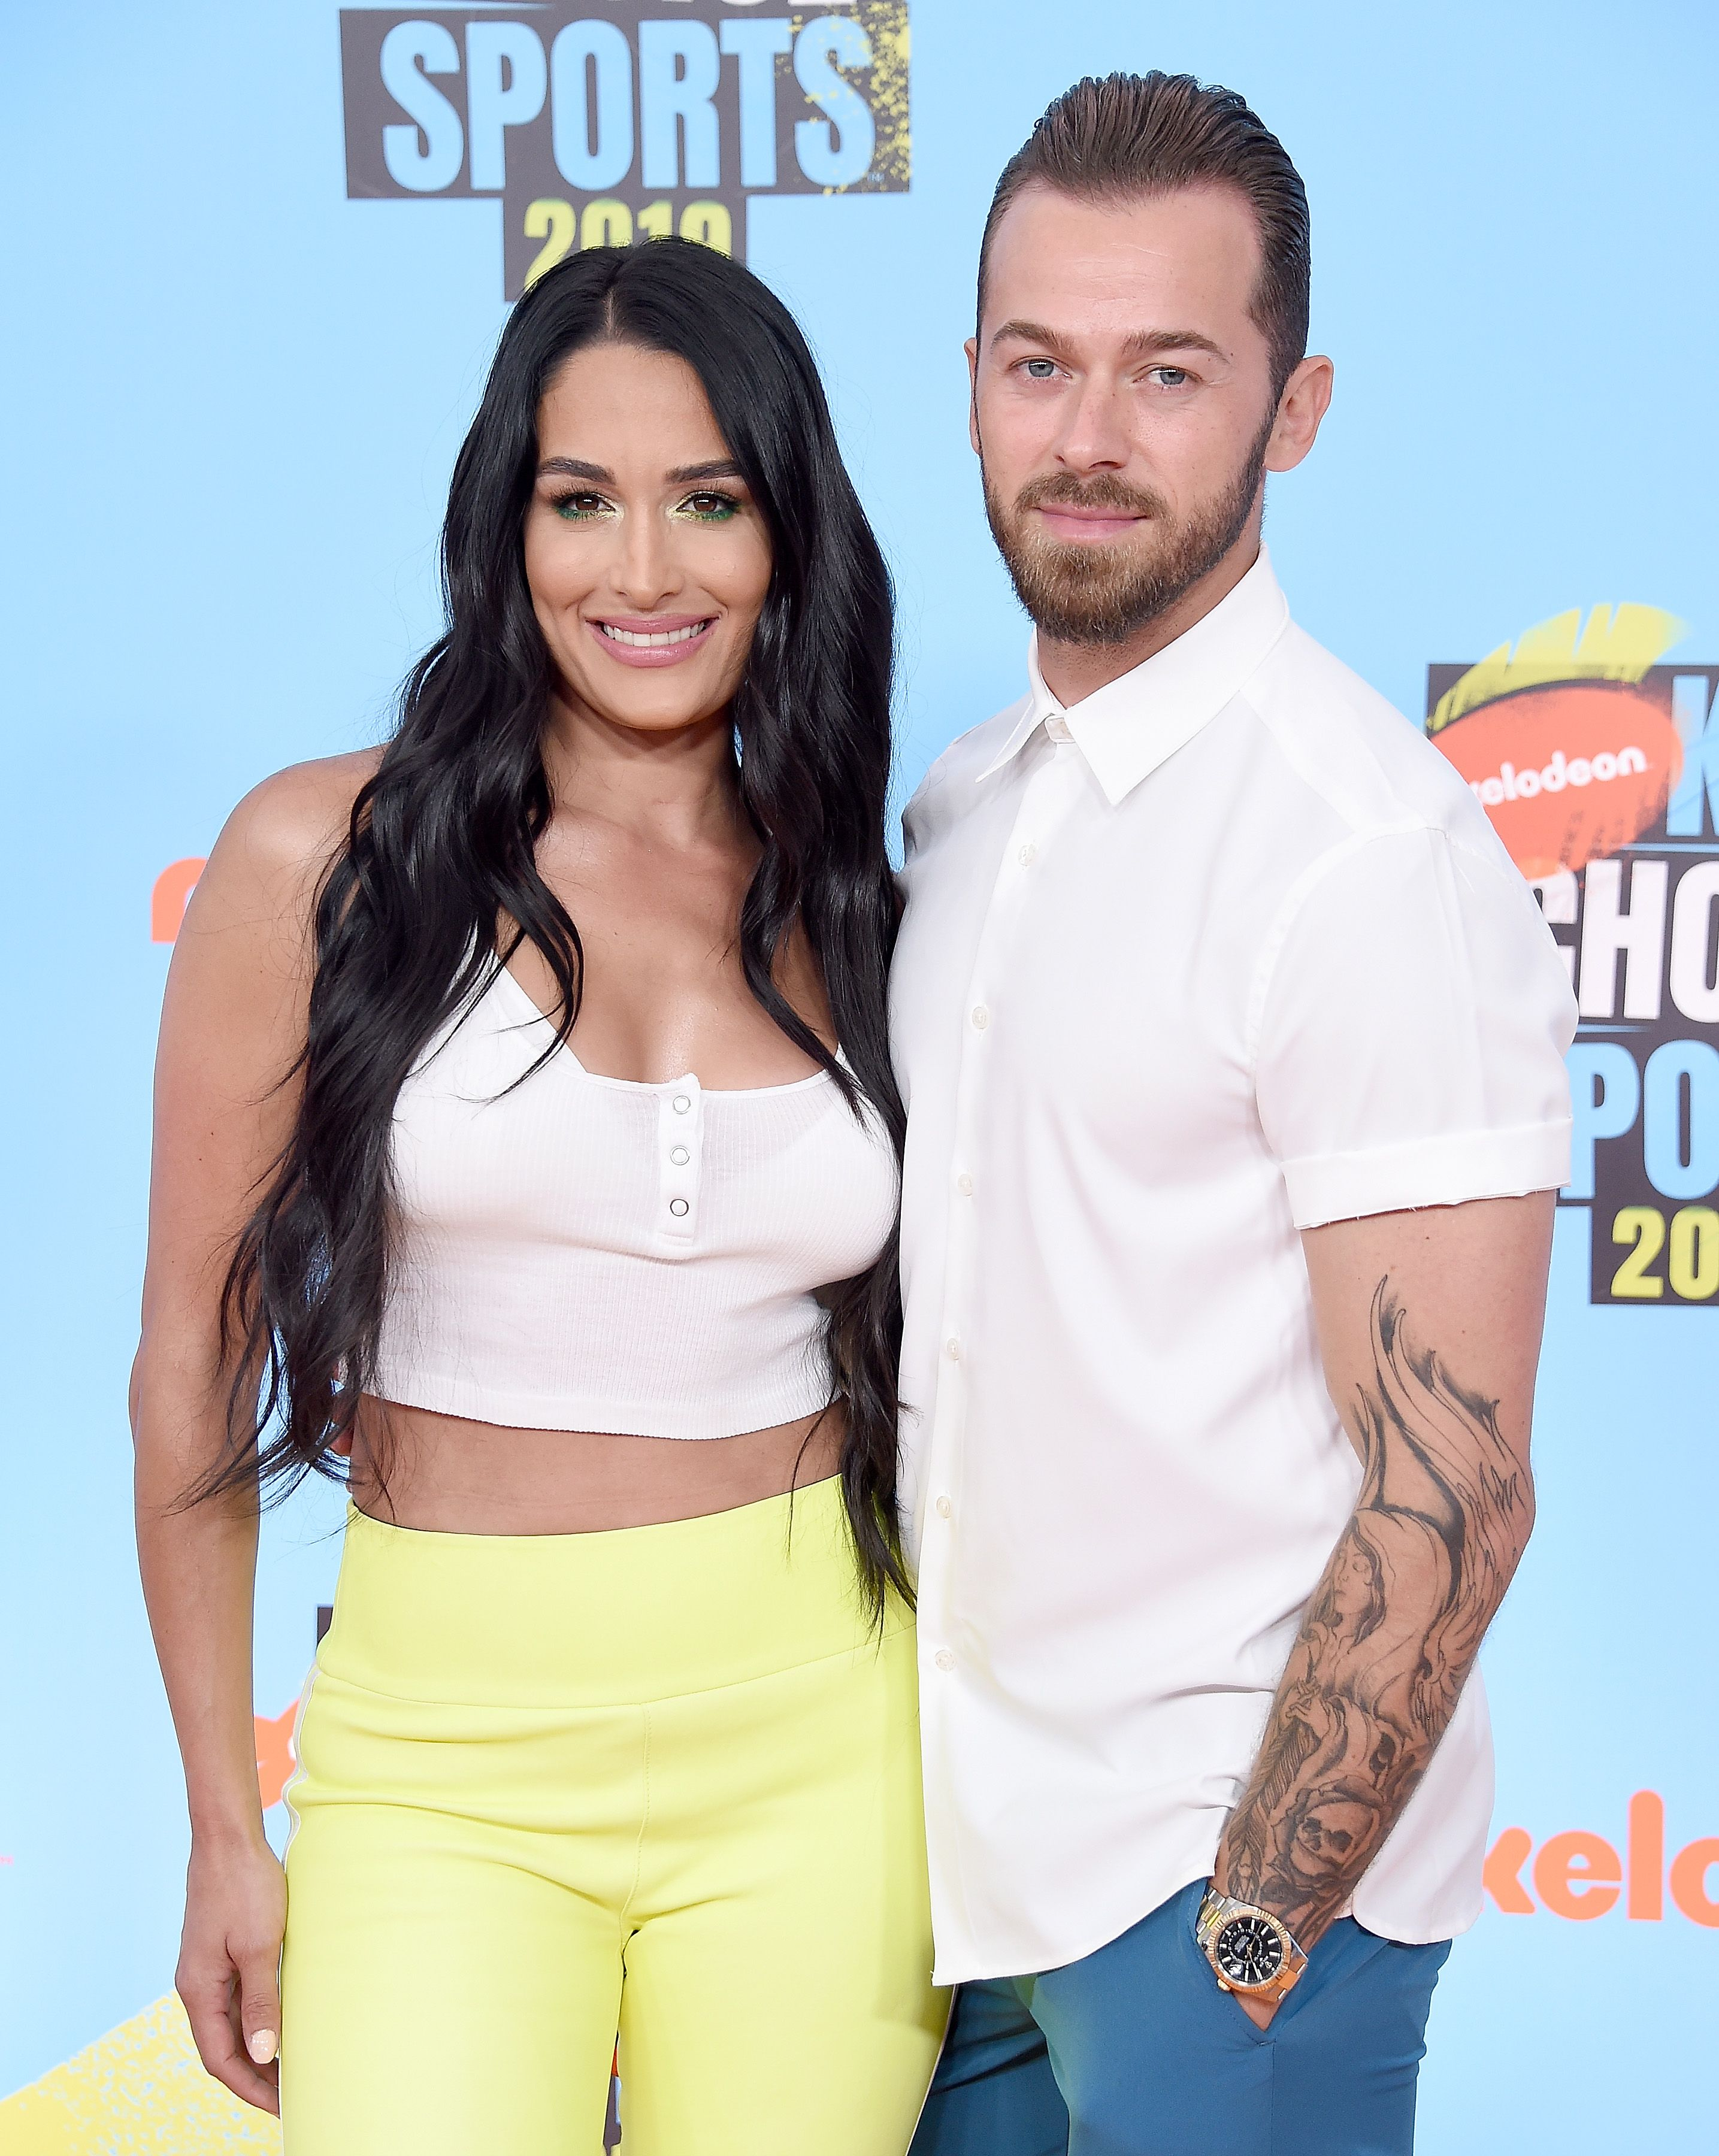 Nikki Bella and Artem Chigvintsev at the Nickelodeon Kids' Choice Sports event on July 11, 2019, in Santa Monica, California | Photo: Gregg DeGuire/WireImage/Getty Images